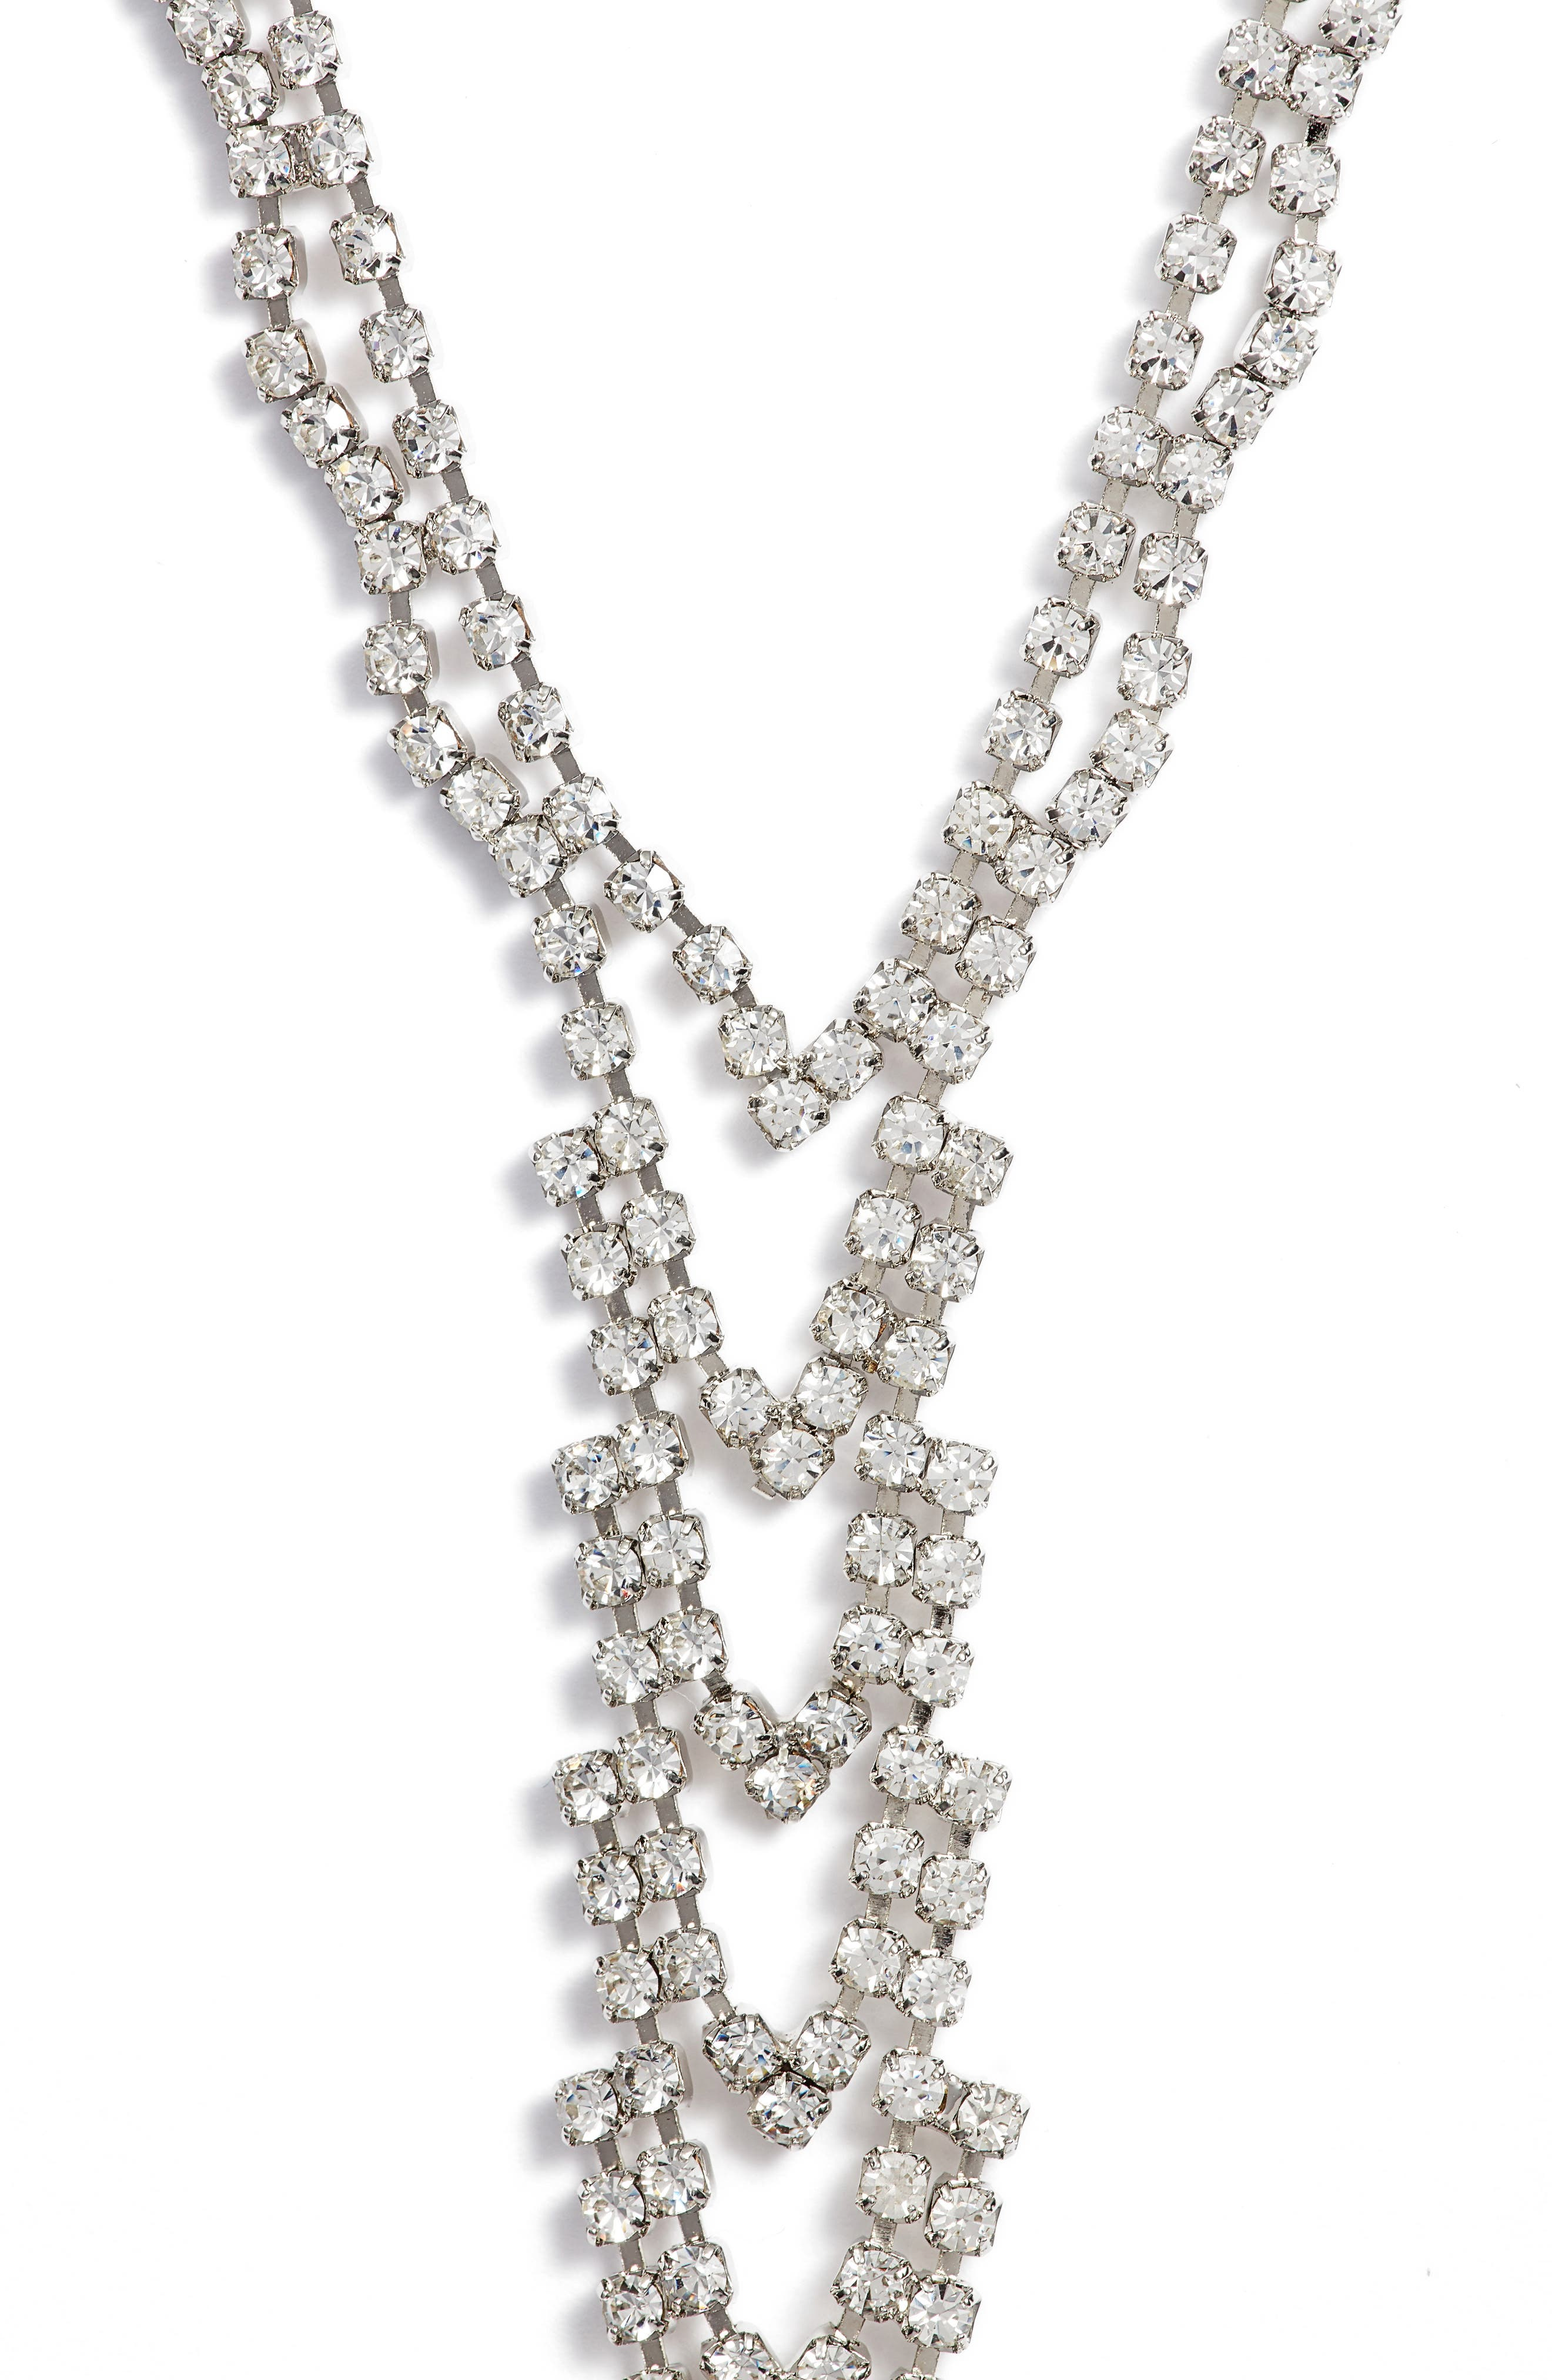 Crystal Ladder Necklace,                             Main thumbnail 1, color,                             040